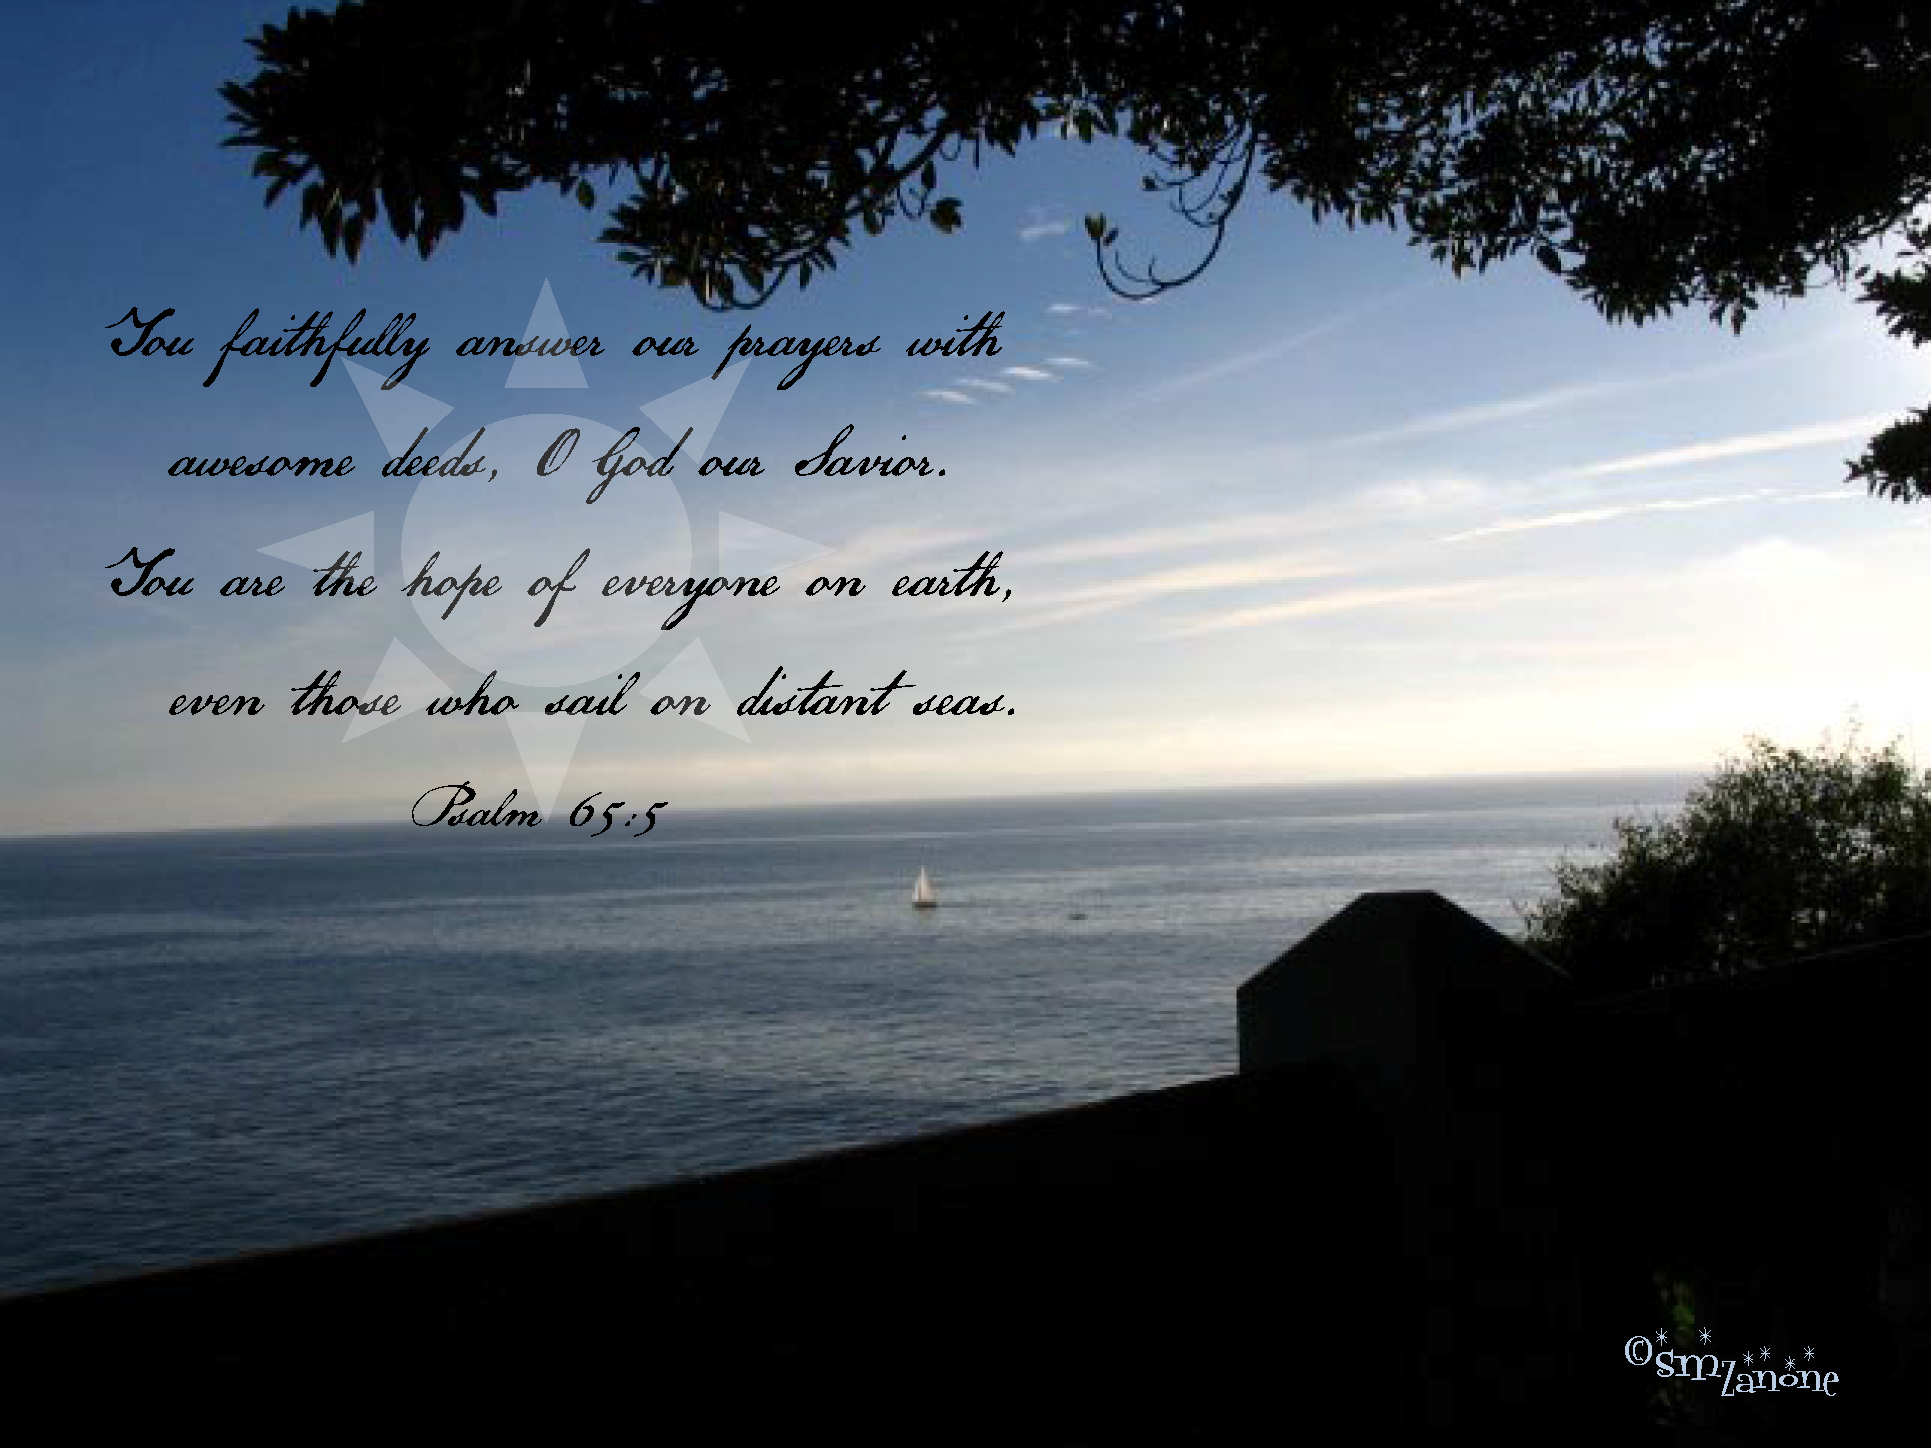 Grant us fair winds, be our following sea… | My Creator's ...